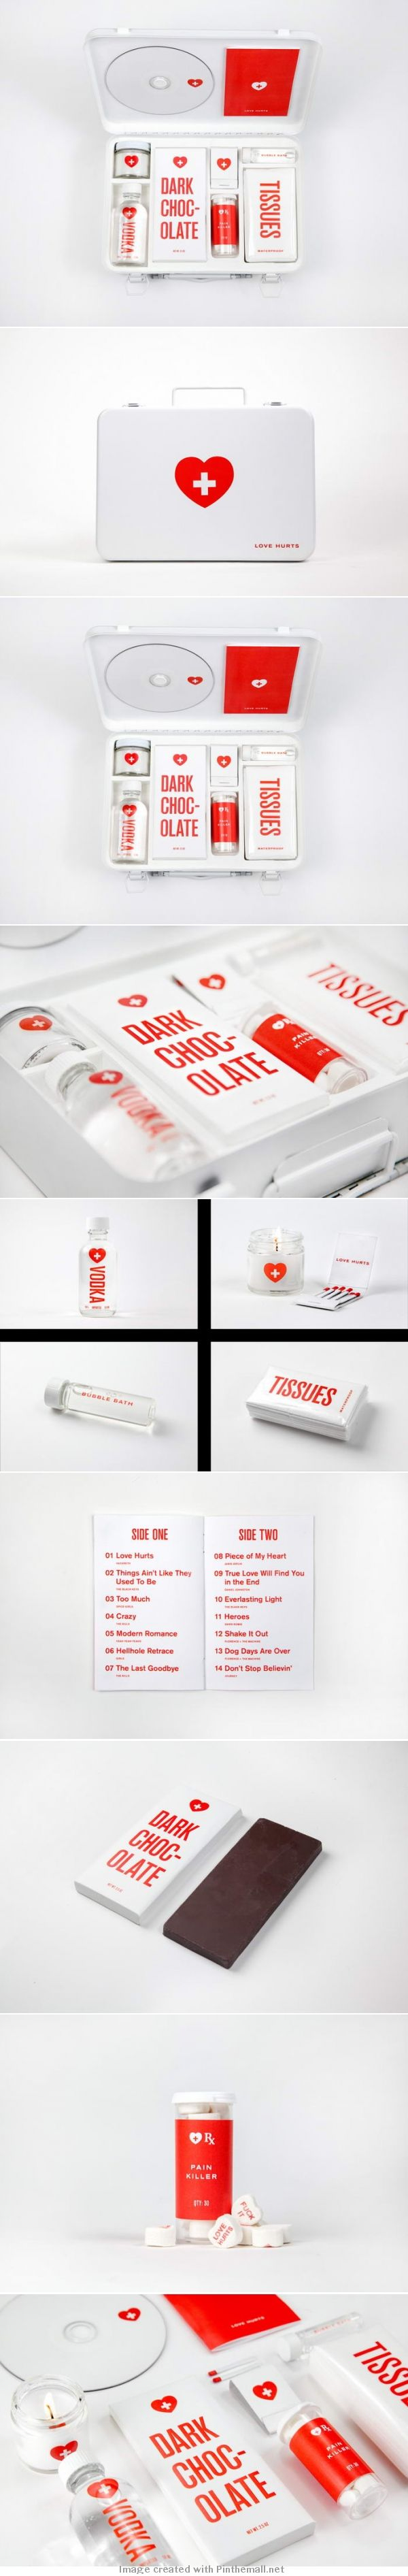 Love Hurts Kit • A First Aid Kit For Desperate Lovers – Love Hurts and the team loves it  #2013 #toppin PD